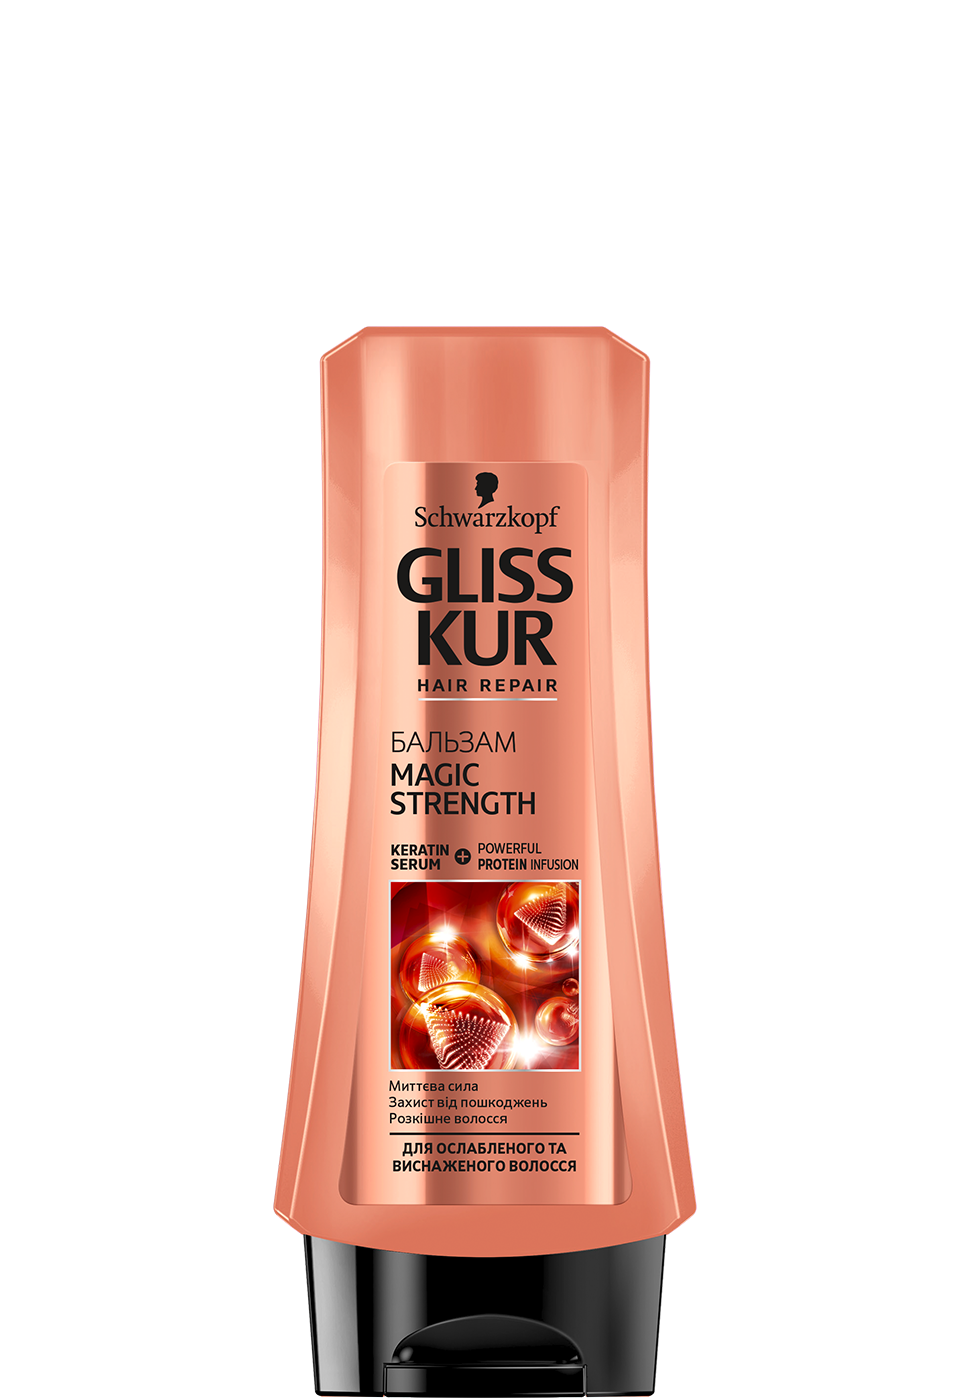 glisskur_de_Magic_Strength_spuelung_970x1400